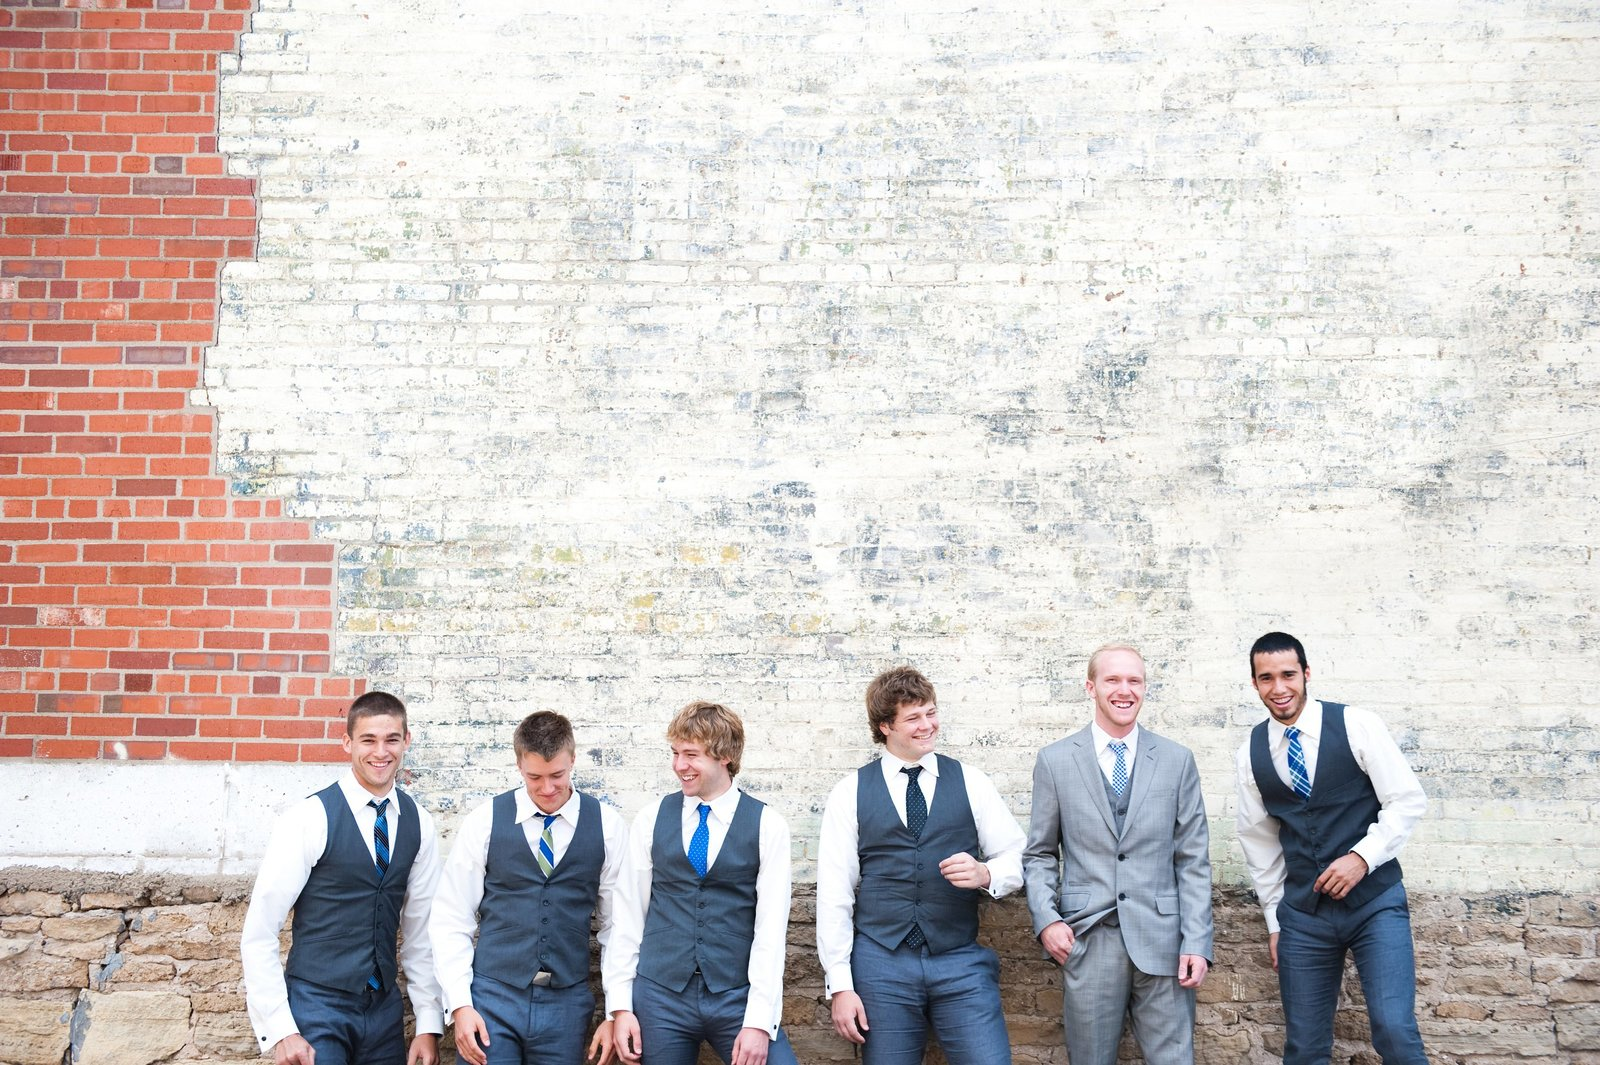 Fargo wedding, groomsmen in Gray suits photographed by Kris kandel